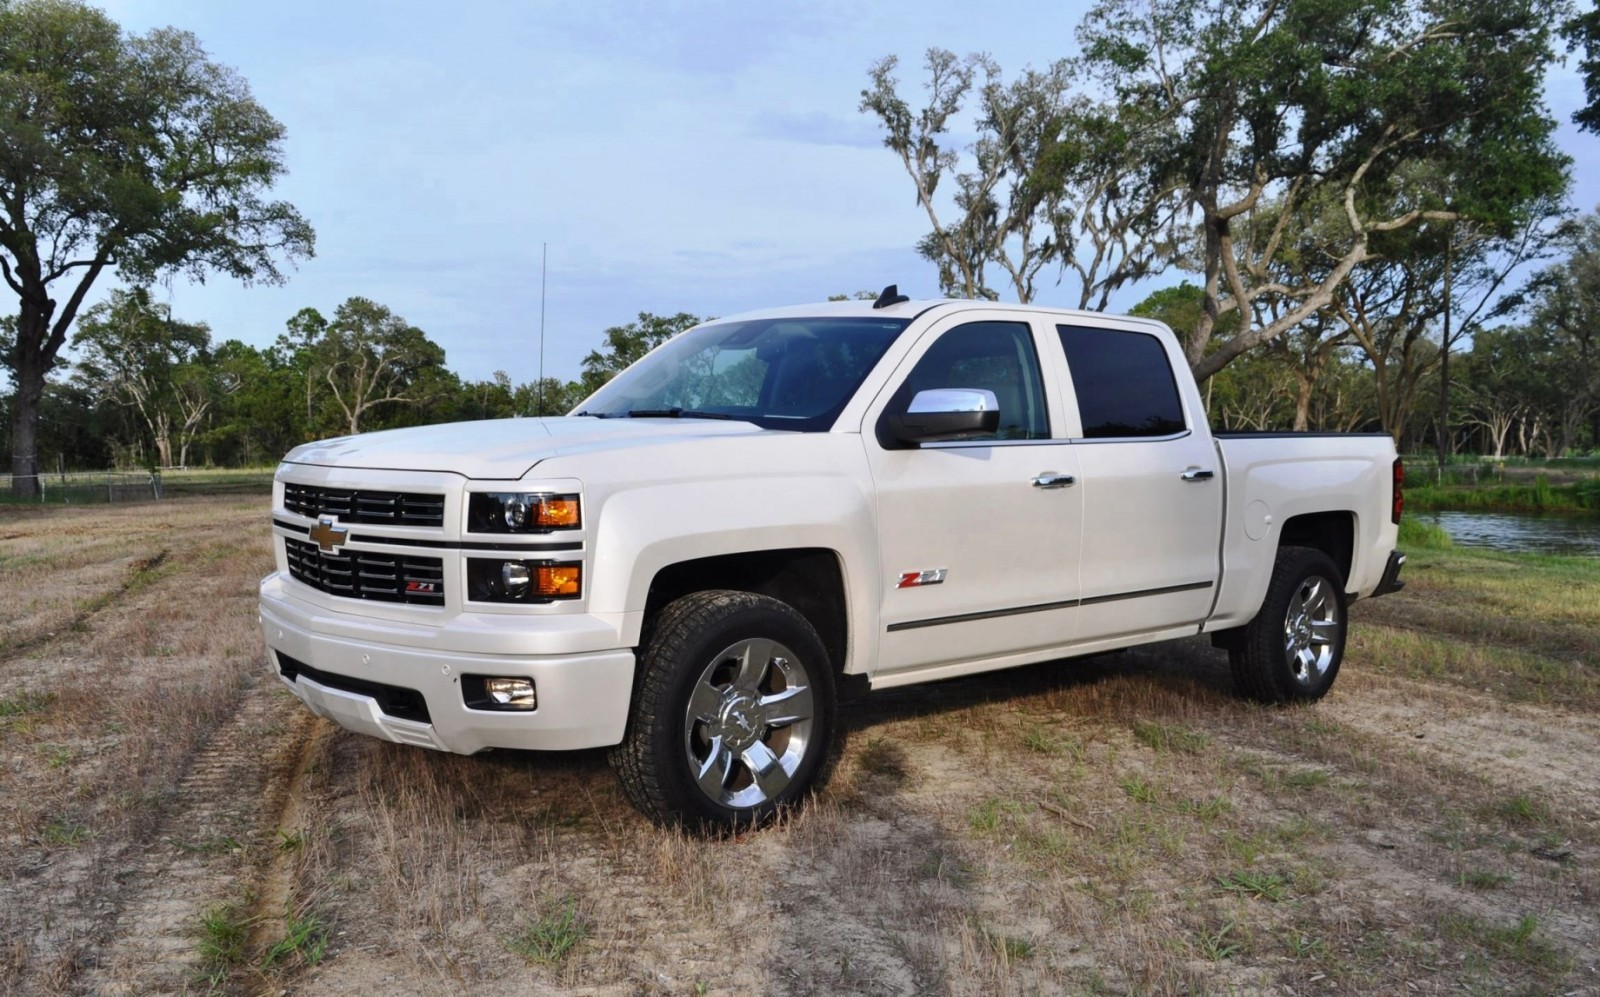 2015 chevrolet silverado ltz z71 4wd custom sport edition 35. Black Bedroom Furniture Sets. Home Design Ideas